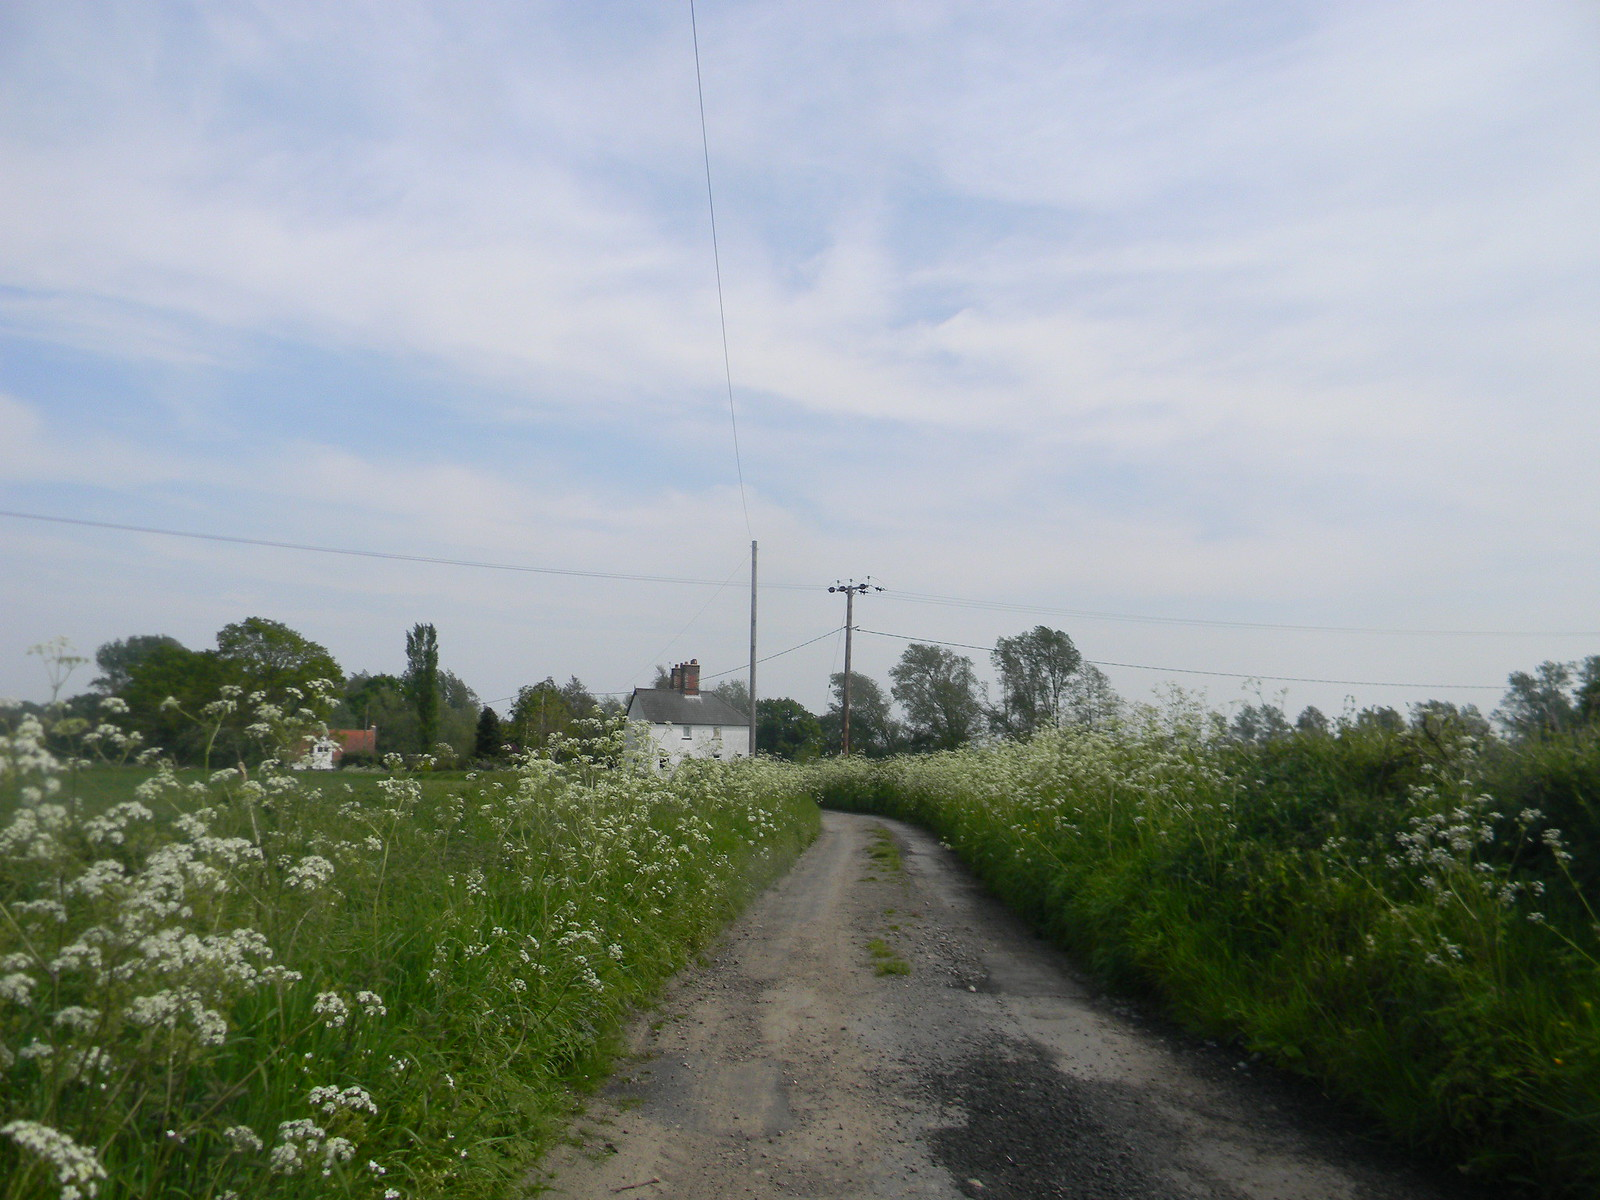 Cotage with cow parsley Manningtree Circular